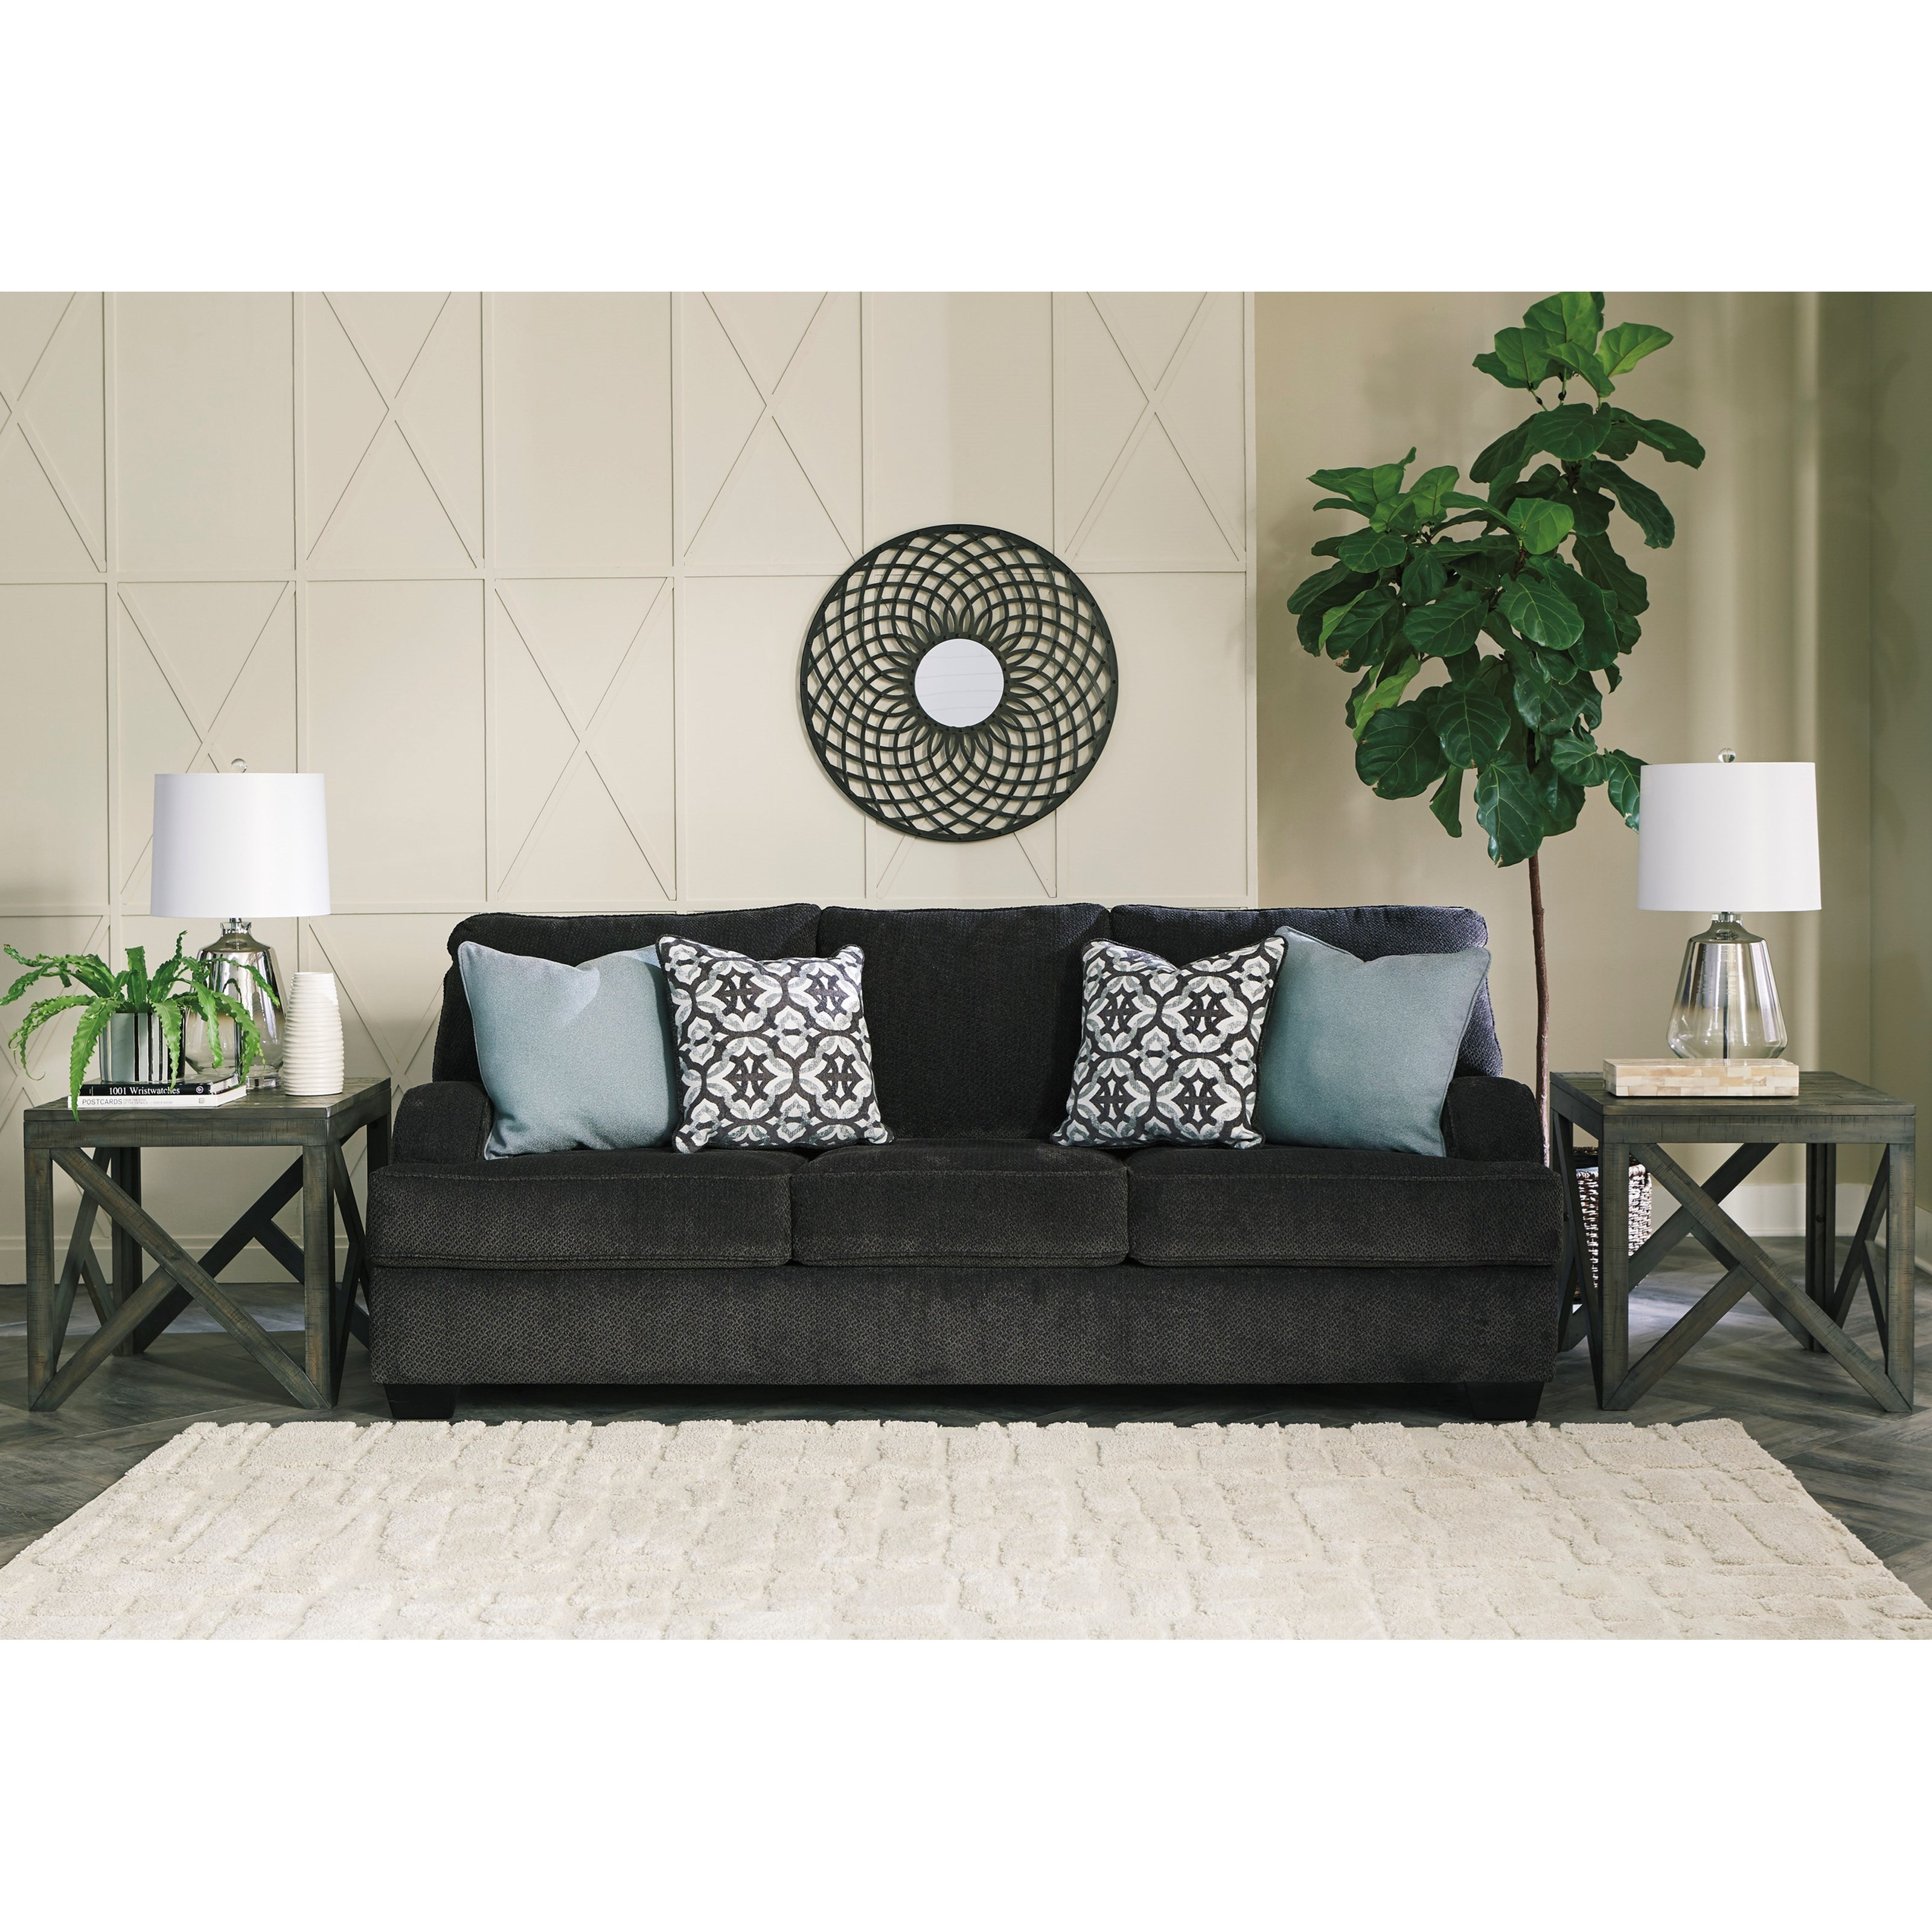 Benchcraft By Ashley Charenton Queen Sofa Sleeper With